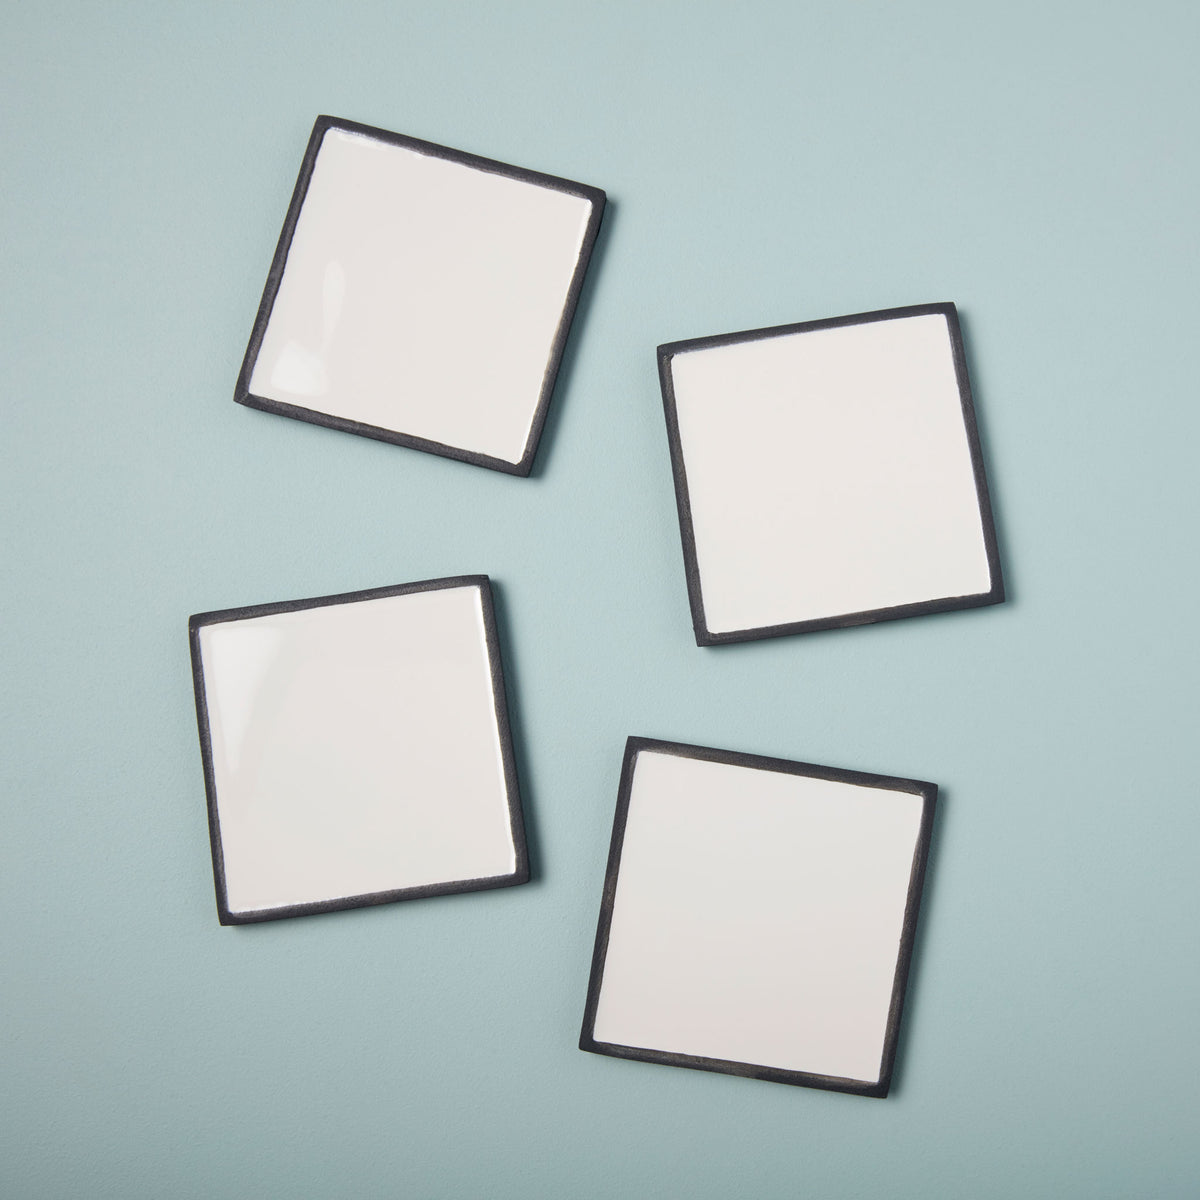 Aluminum & Enamel Square Coasters, Set of 4